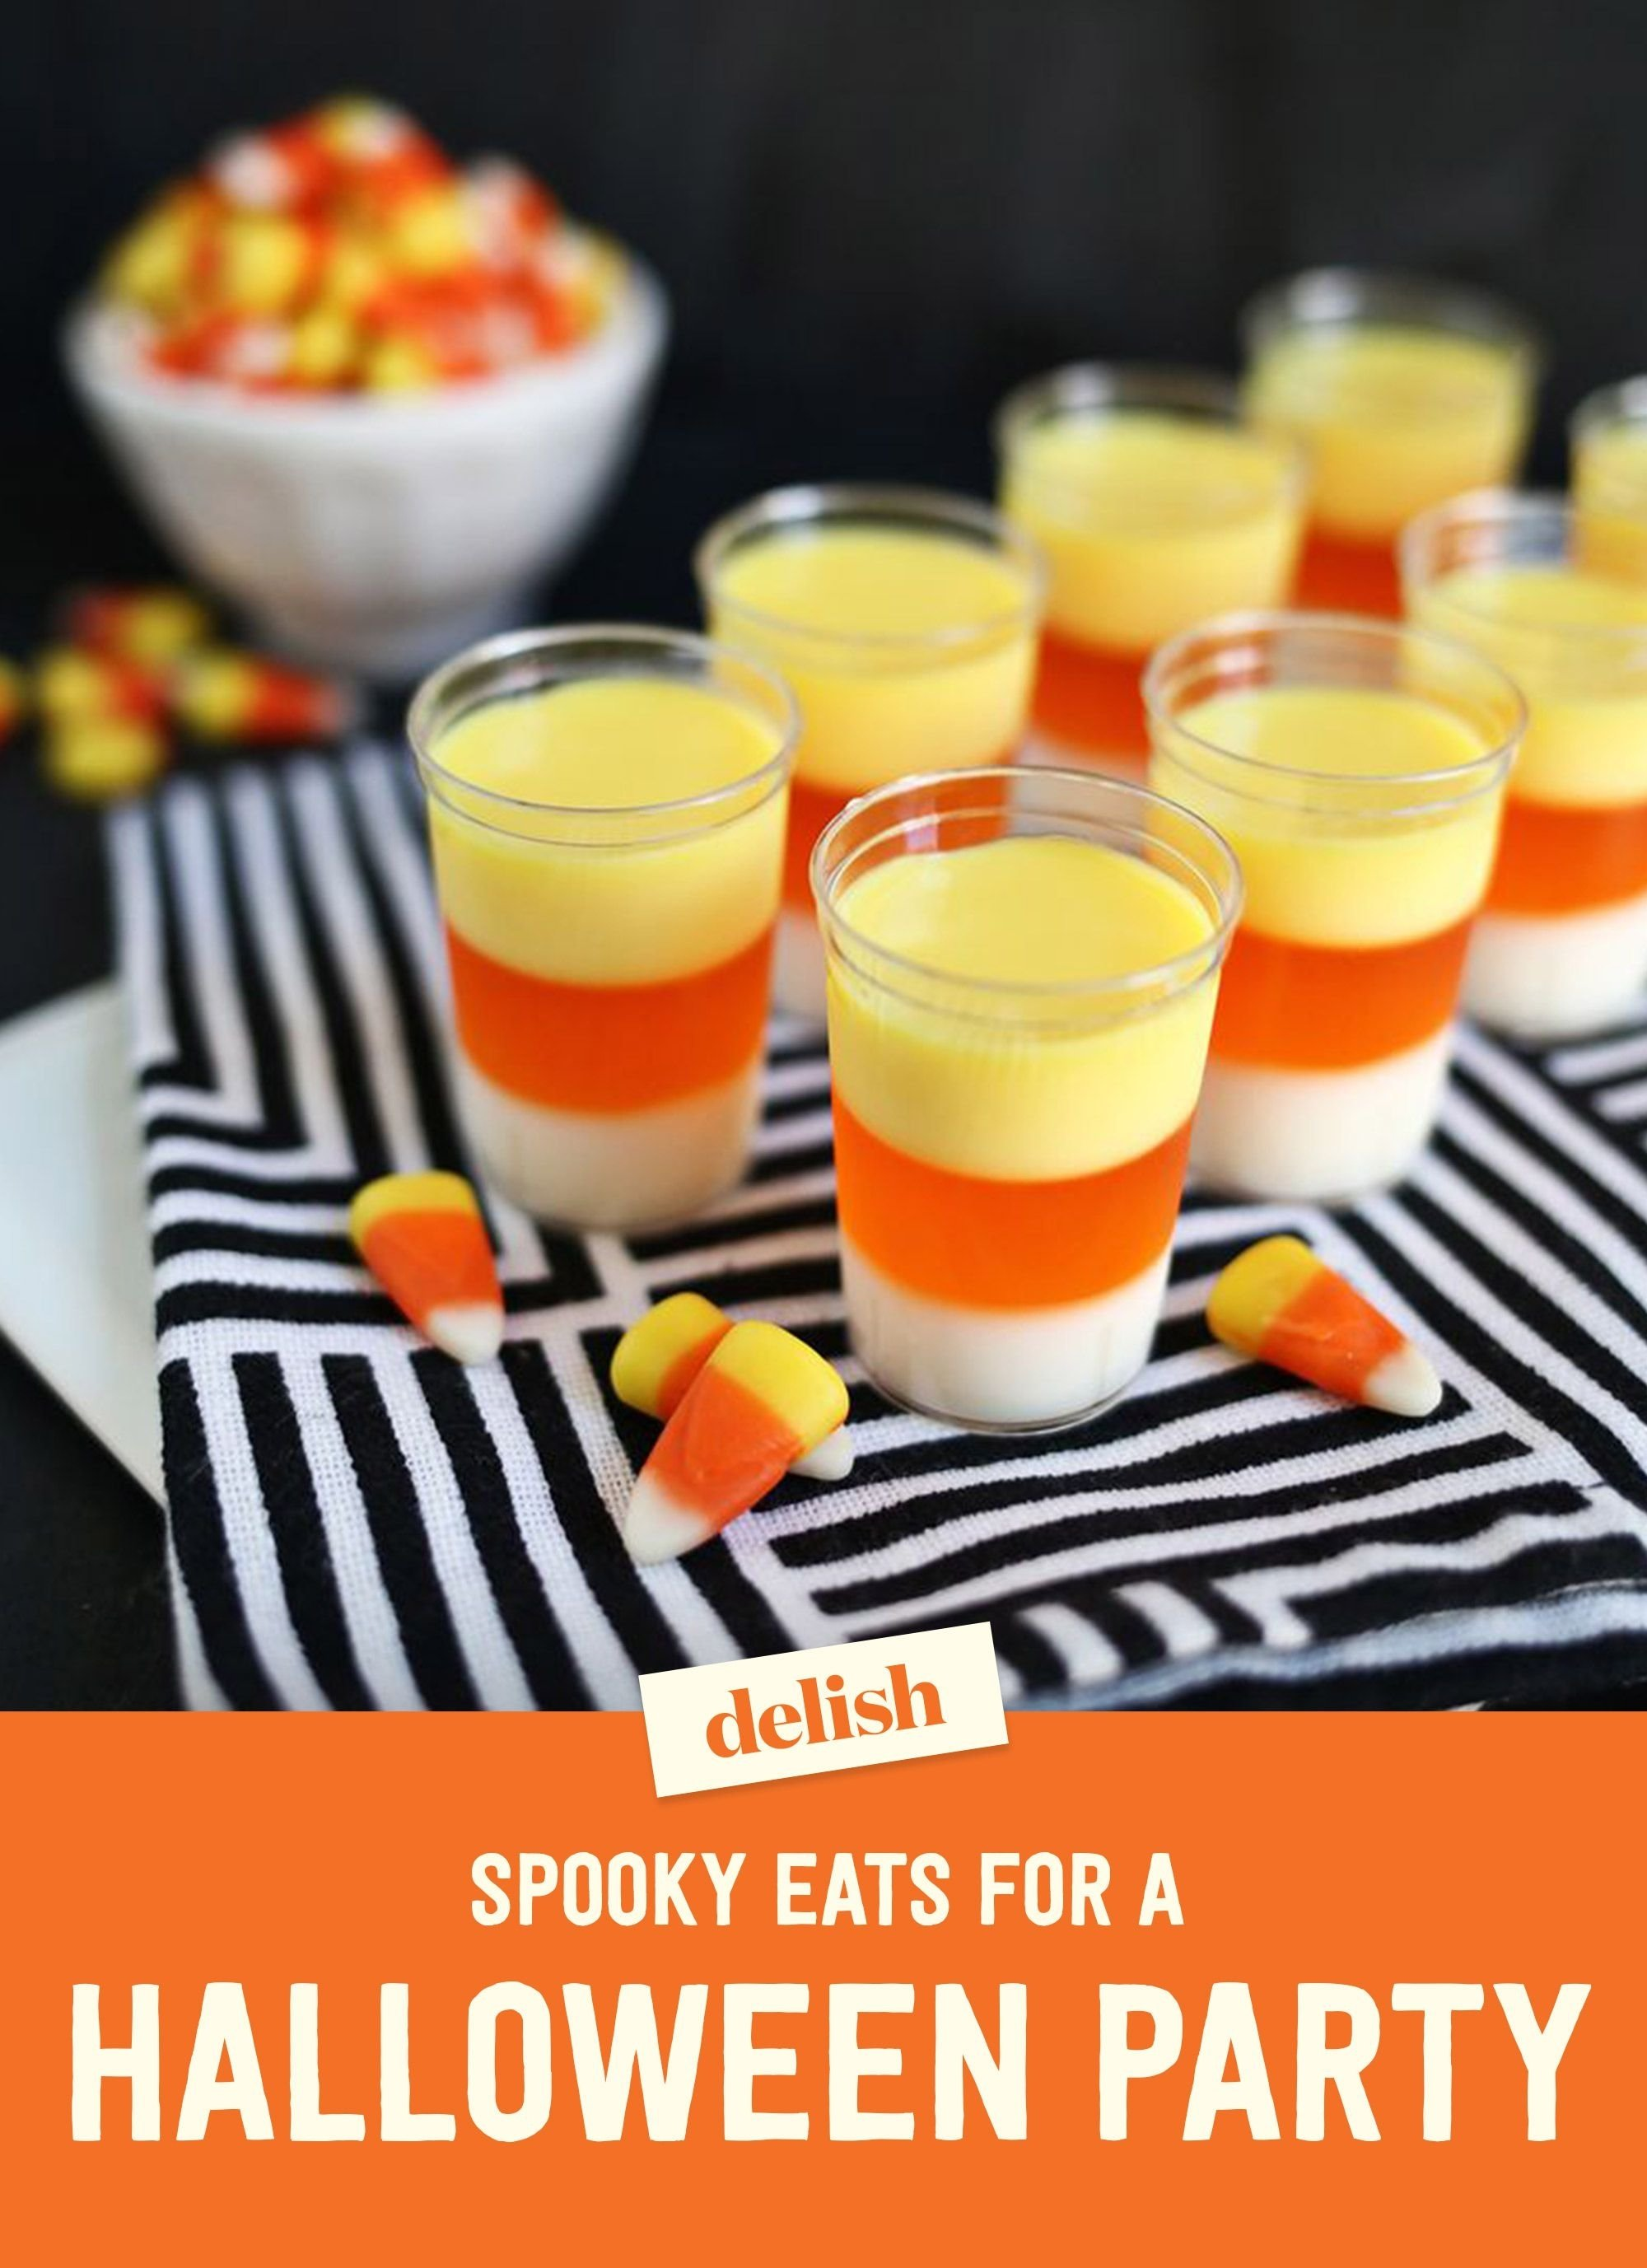 10 Trendy Halloween Party Ideas For Adults 40 adult halloween party ideas halloween food for adults delish 14